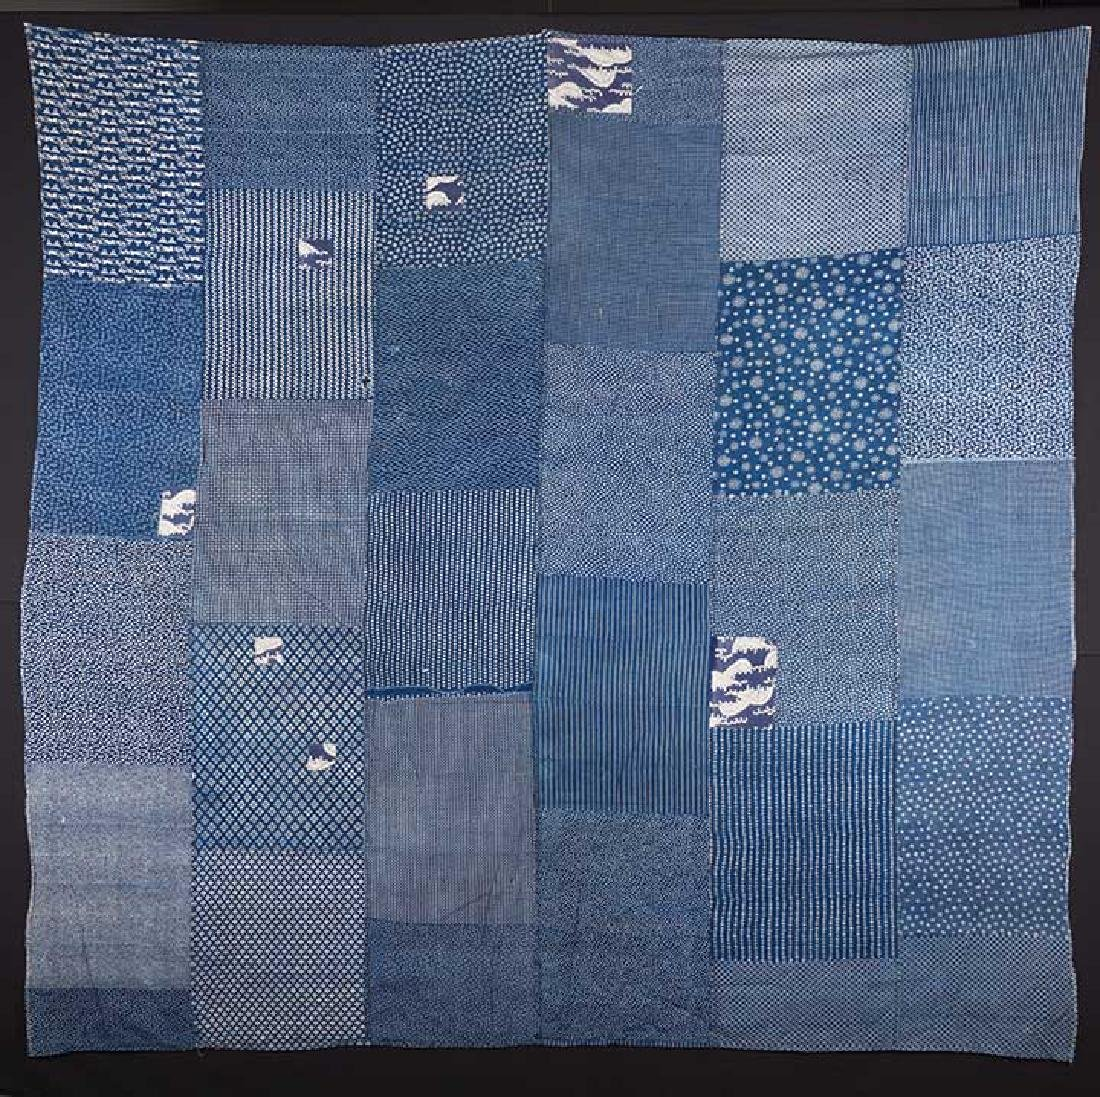 TWO INDIGO BORO QUILTS, JAPAN, LATE 19th C. - 3